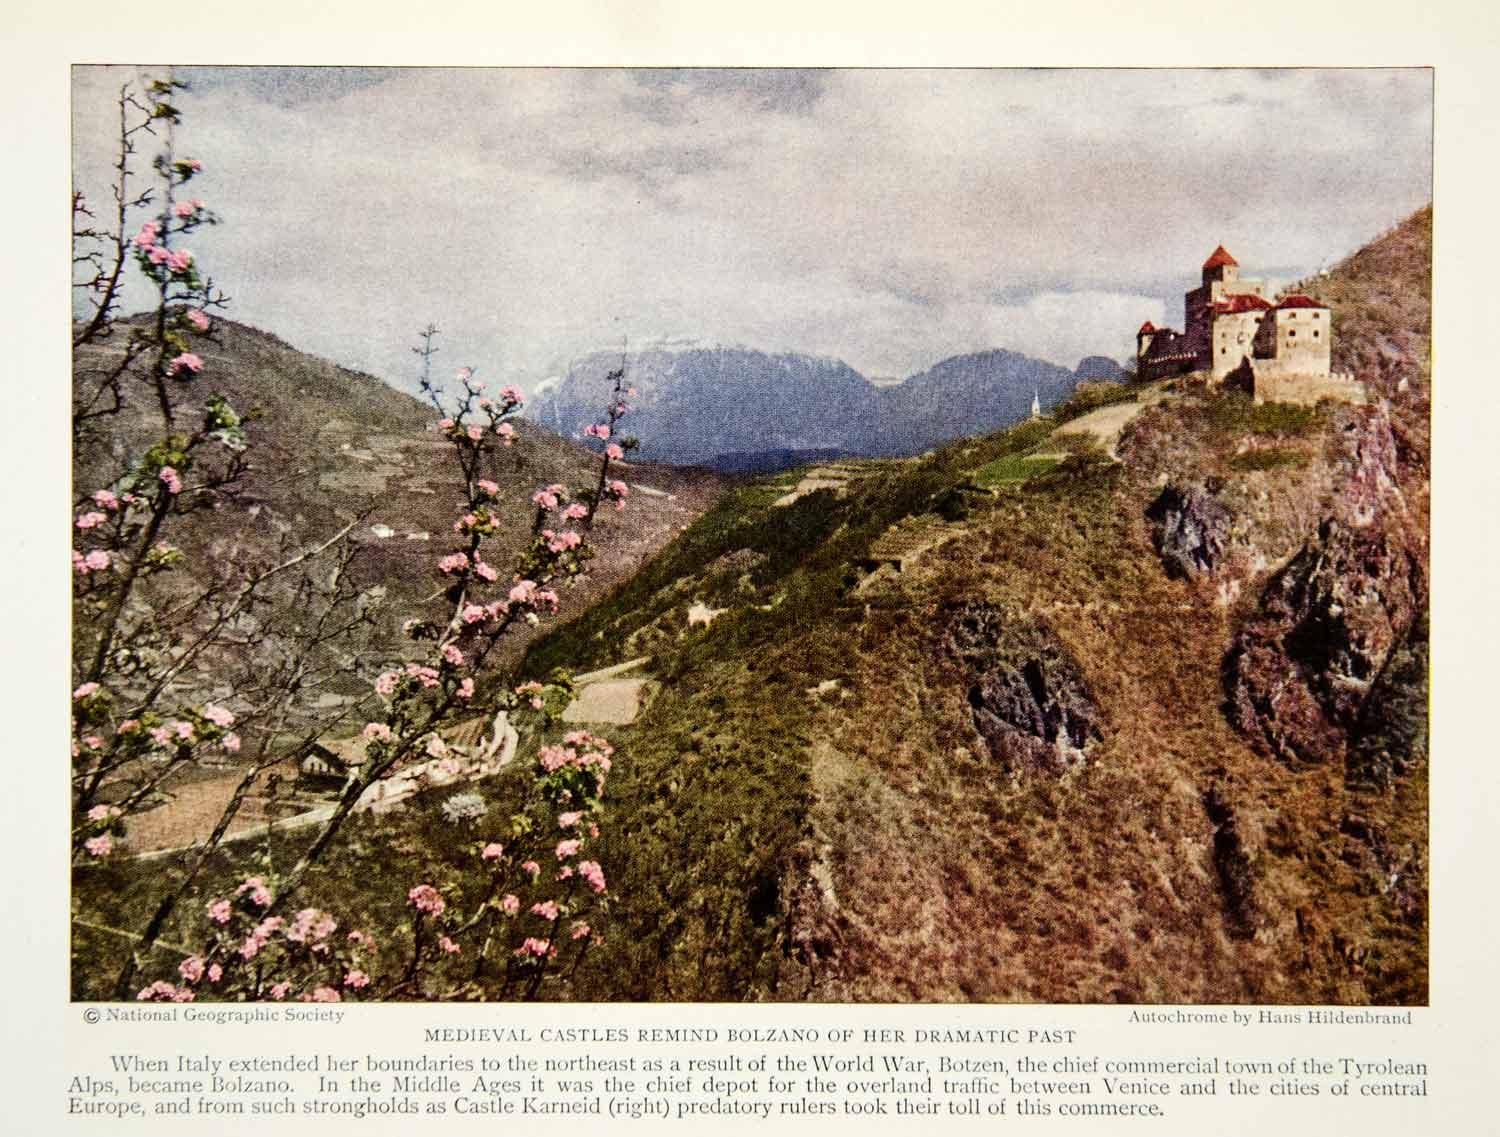 1928 Color Print Karneid Castle Italy Bolzano Fortress Structure Medieval NGMA1